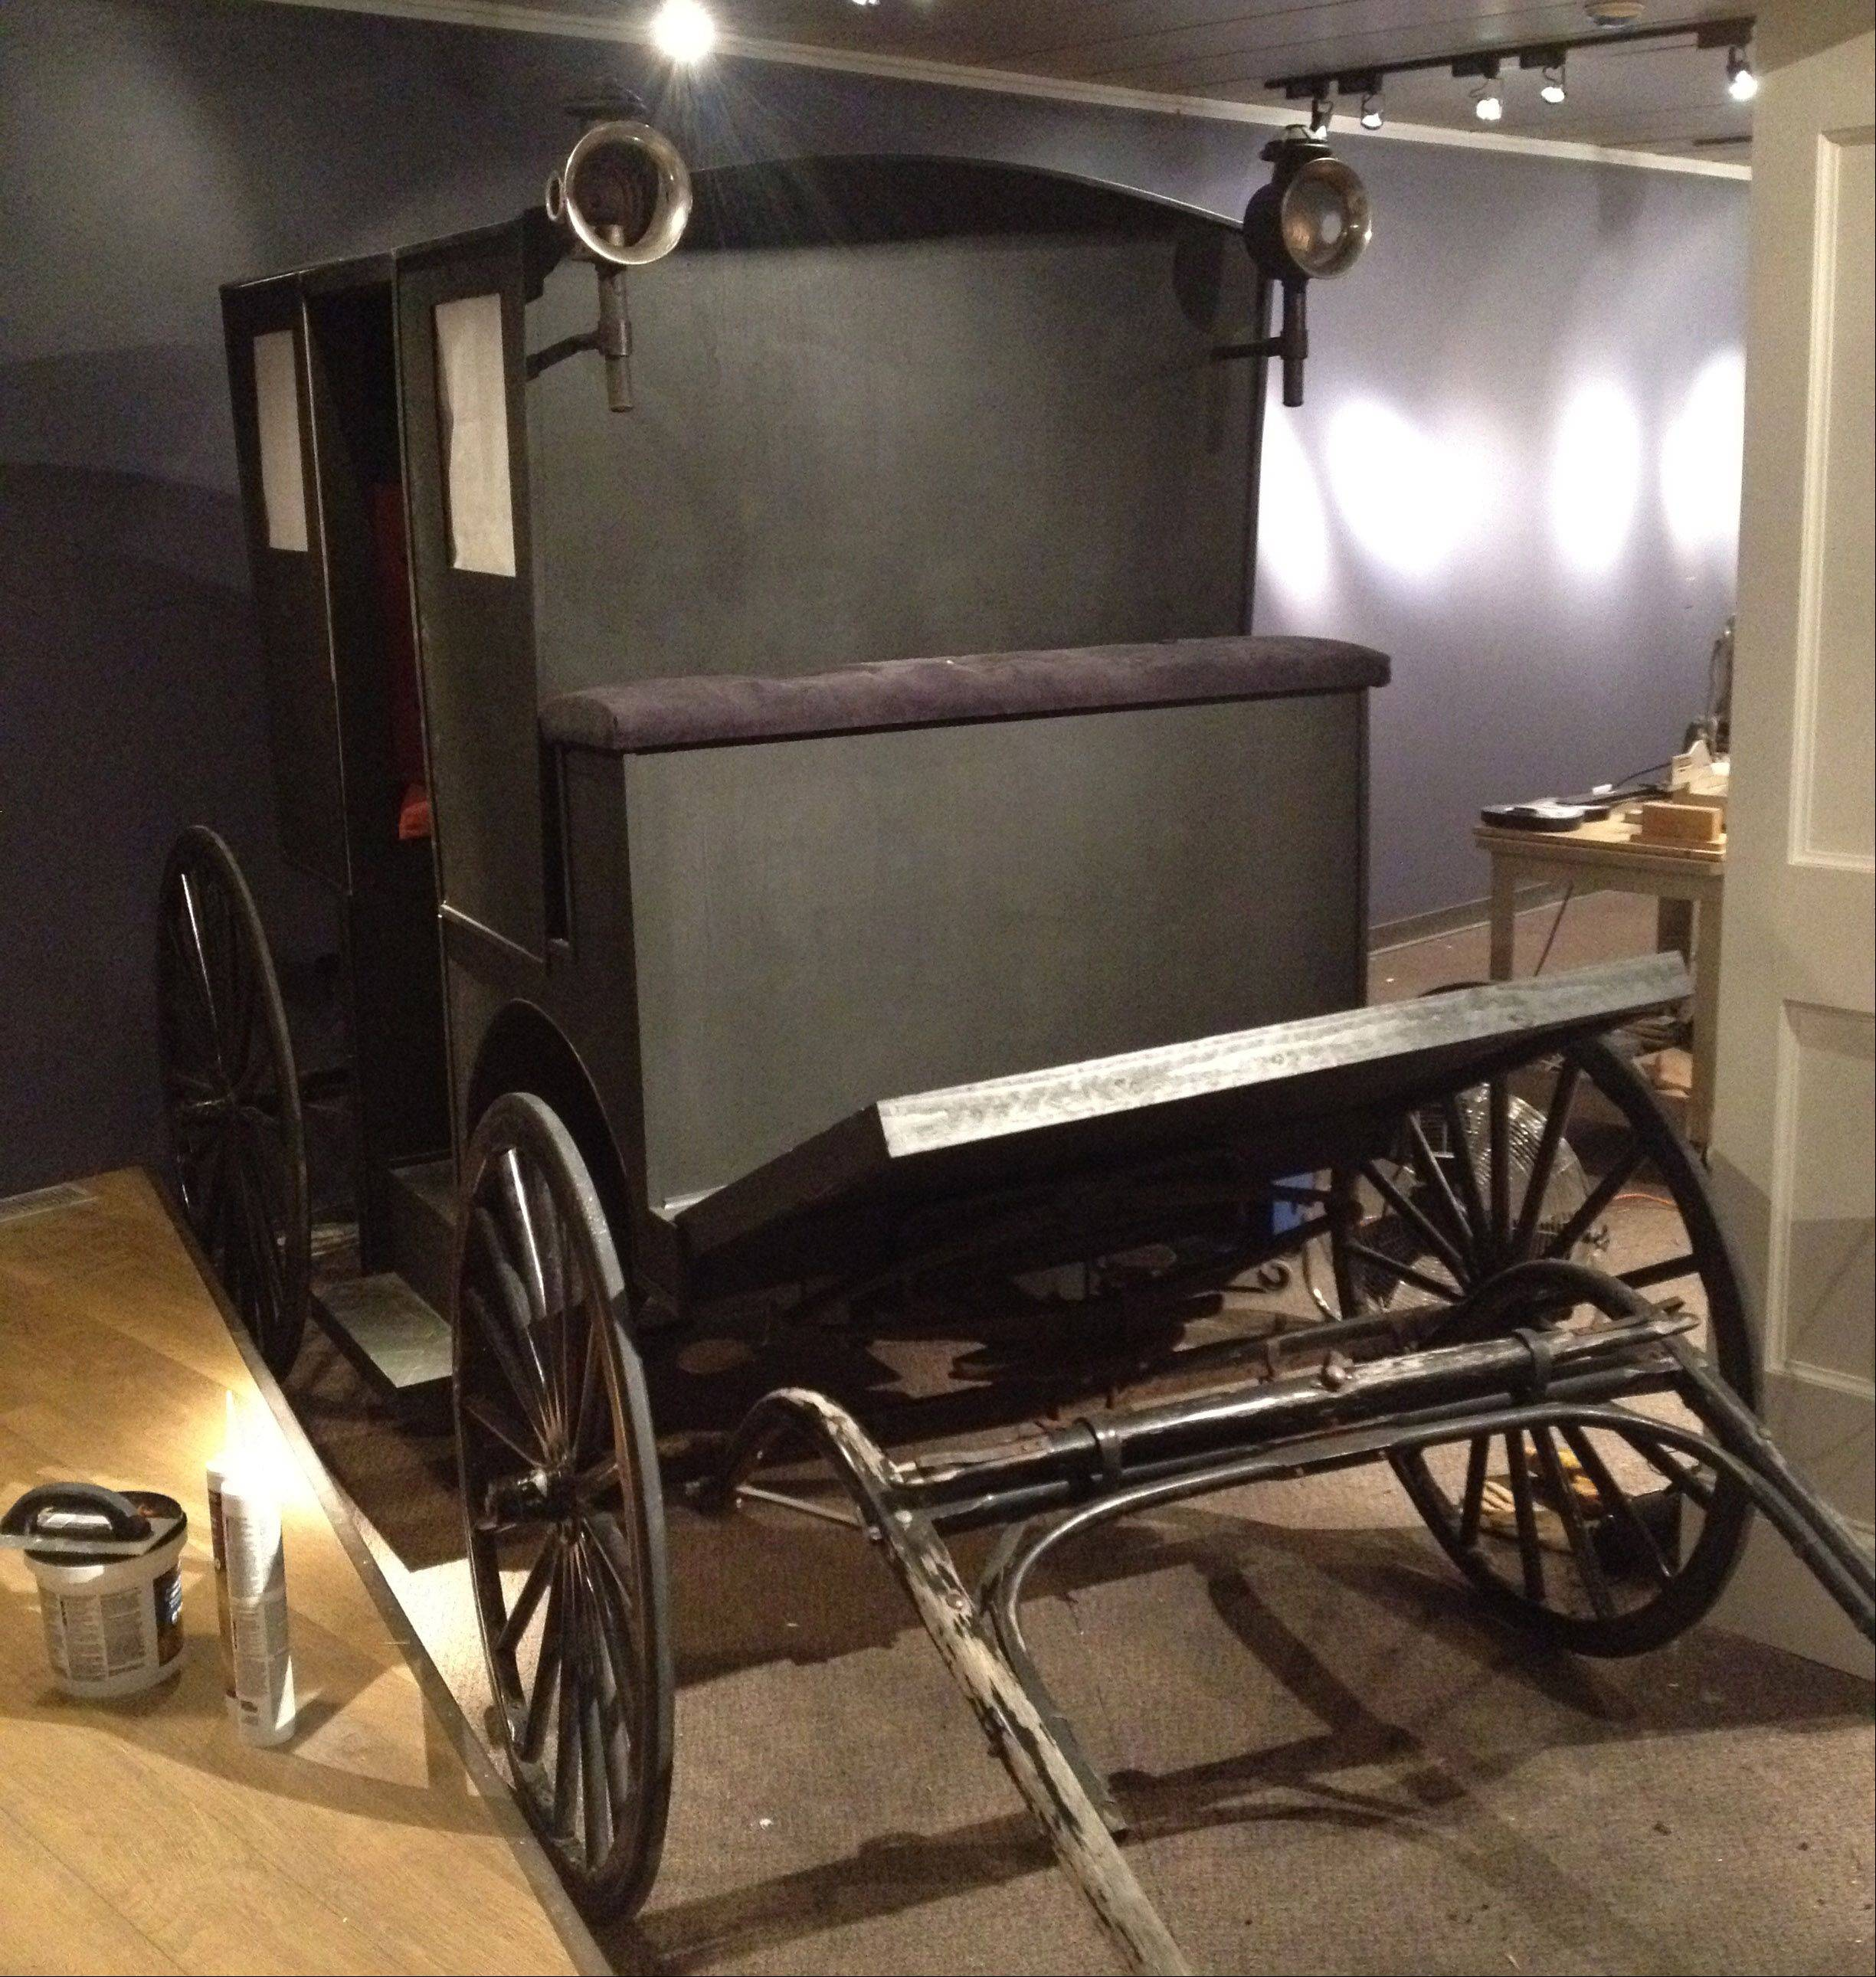 A restored carriage which will be fitted with screens in the windows to give visitors a quick summary of some of Charles Dickens' popular novels. The Lake County Discovery Museum will host a new Dickens exhibit starting Sept. 29